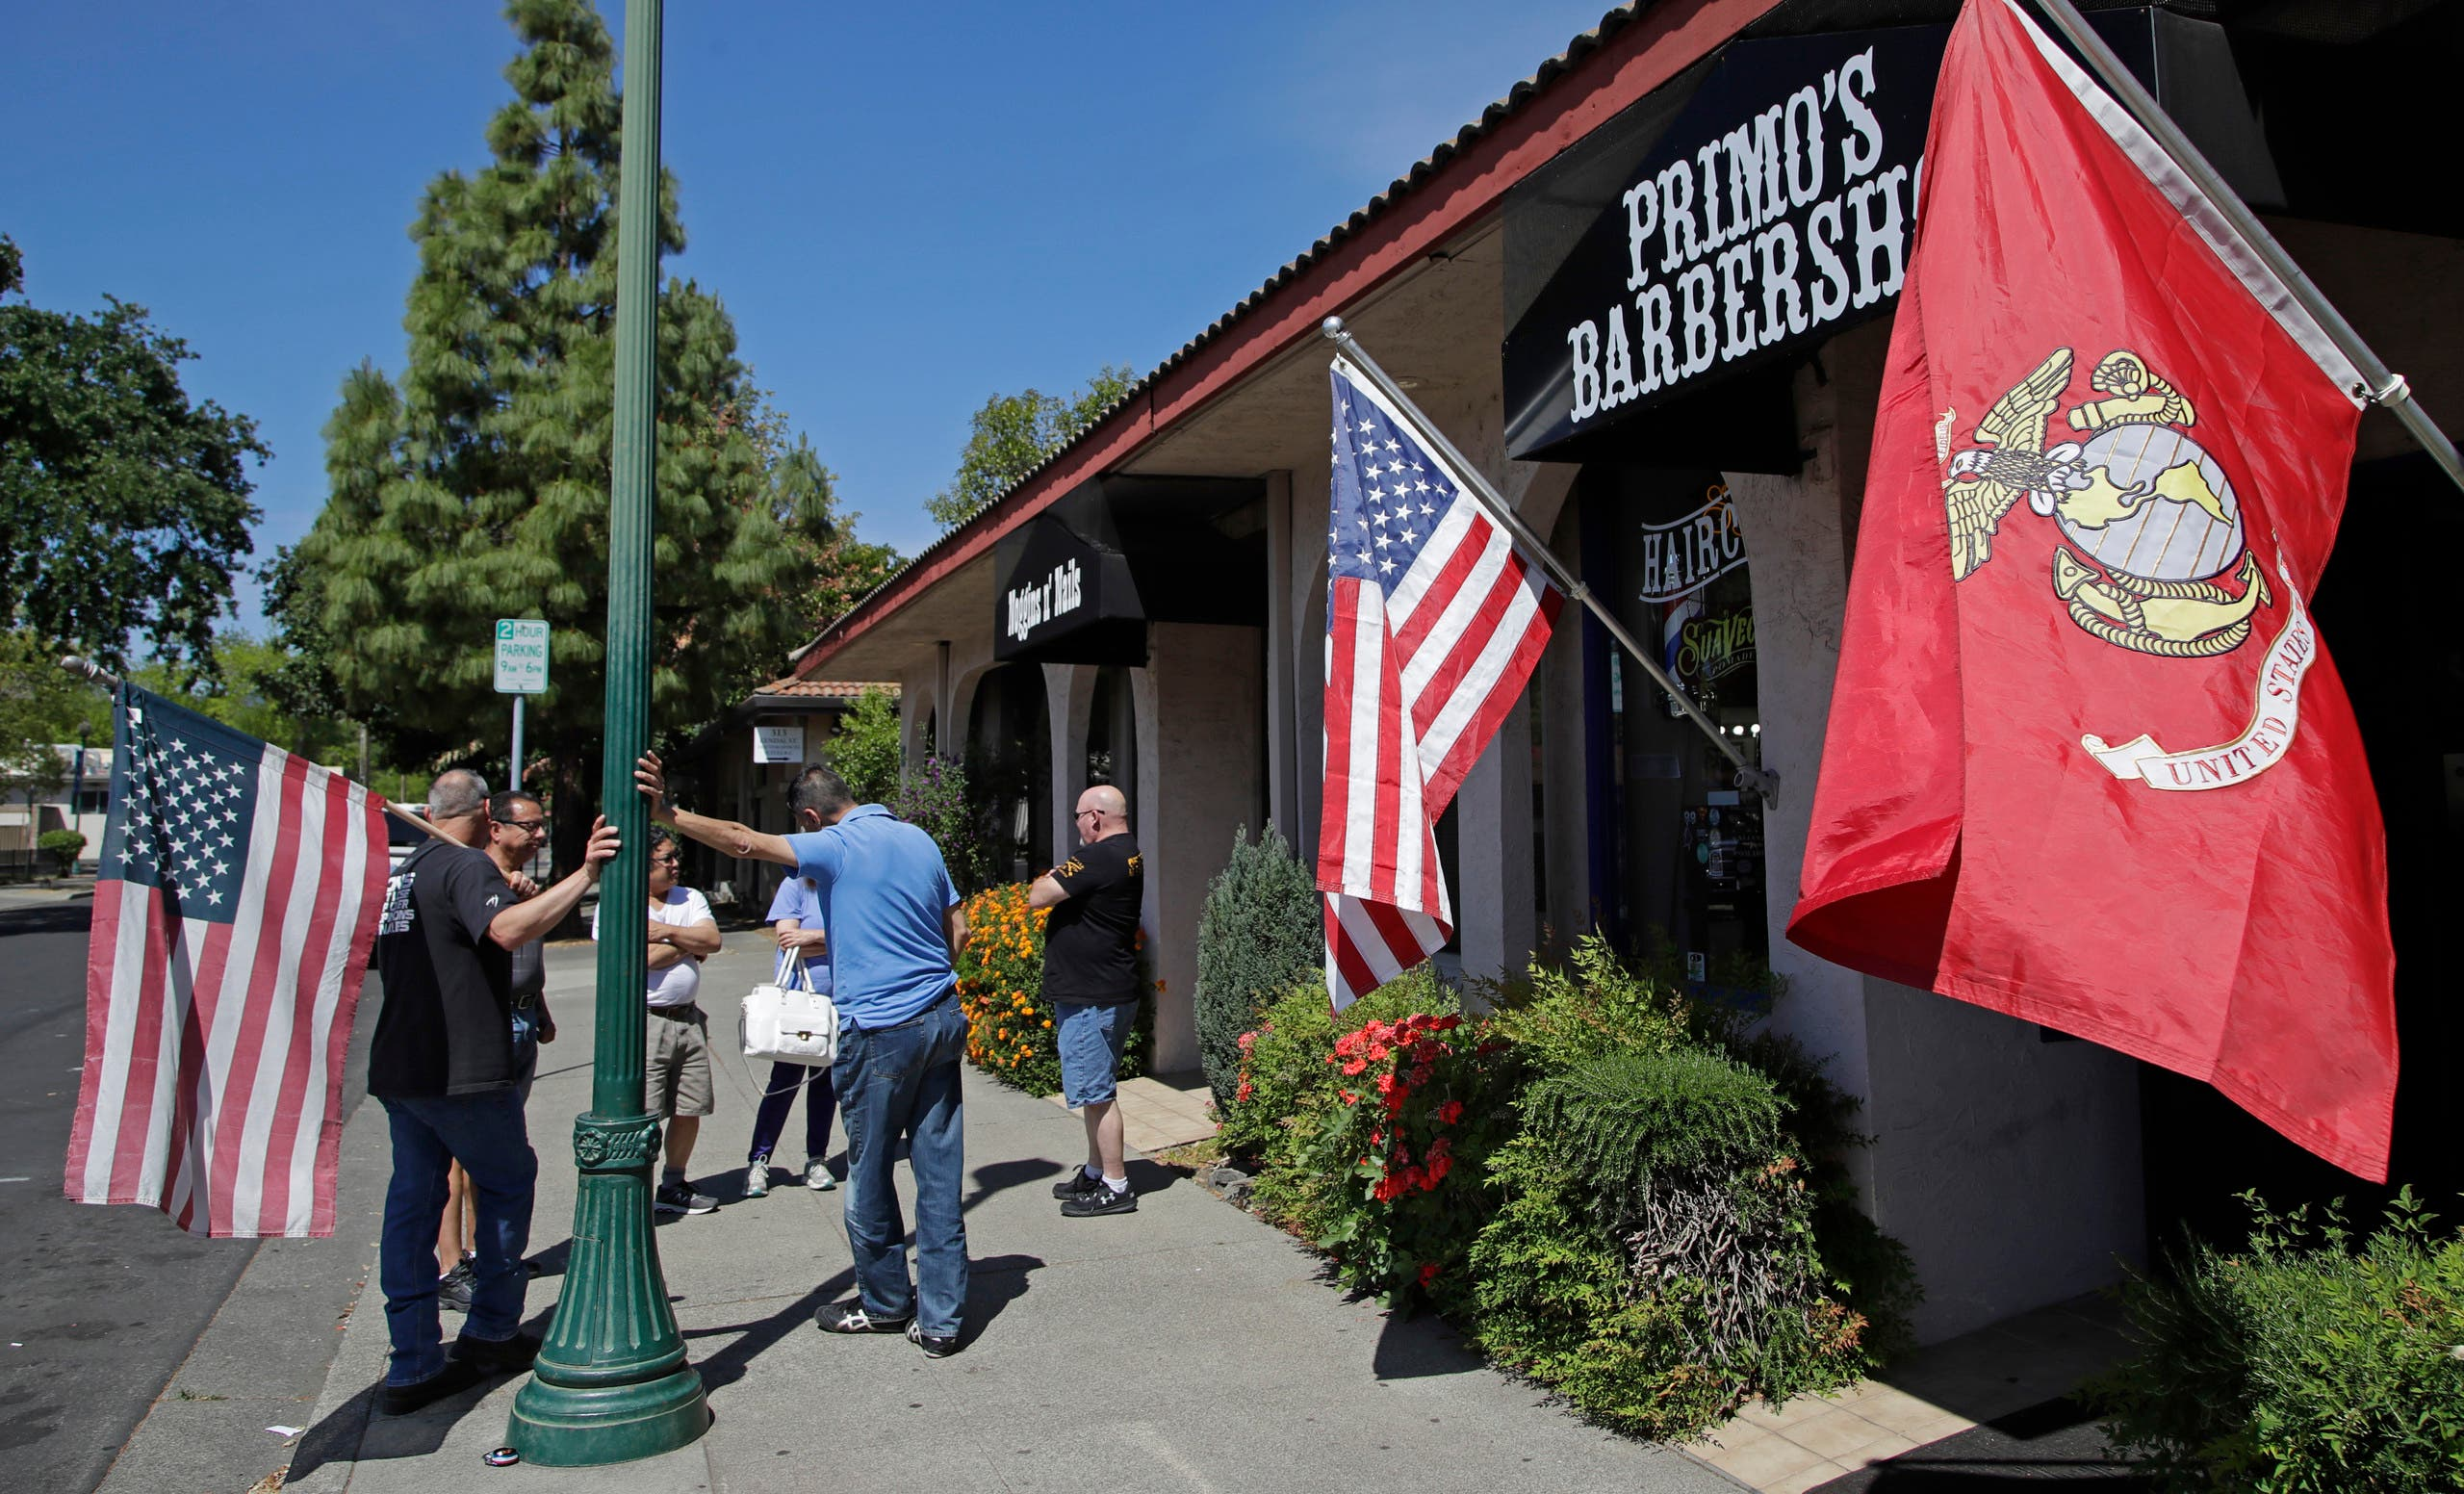 People wait in line to have their hair cut at a barbershop on May 4, 2020, in Vacaville, California. (AP)